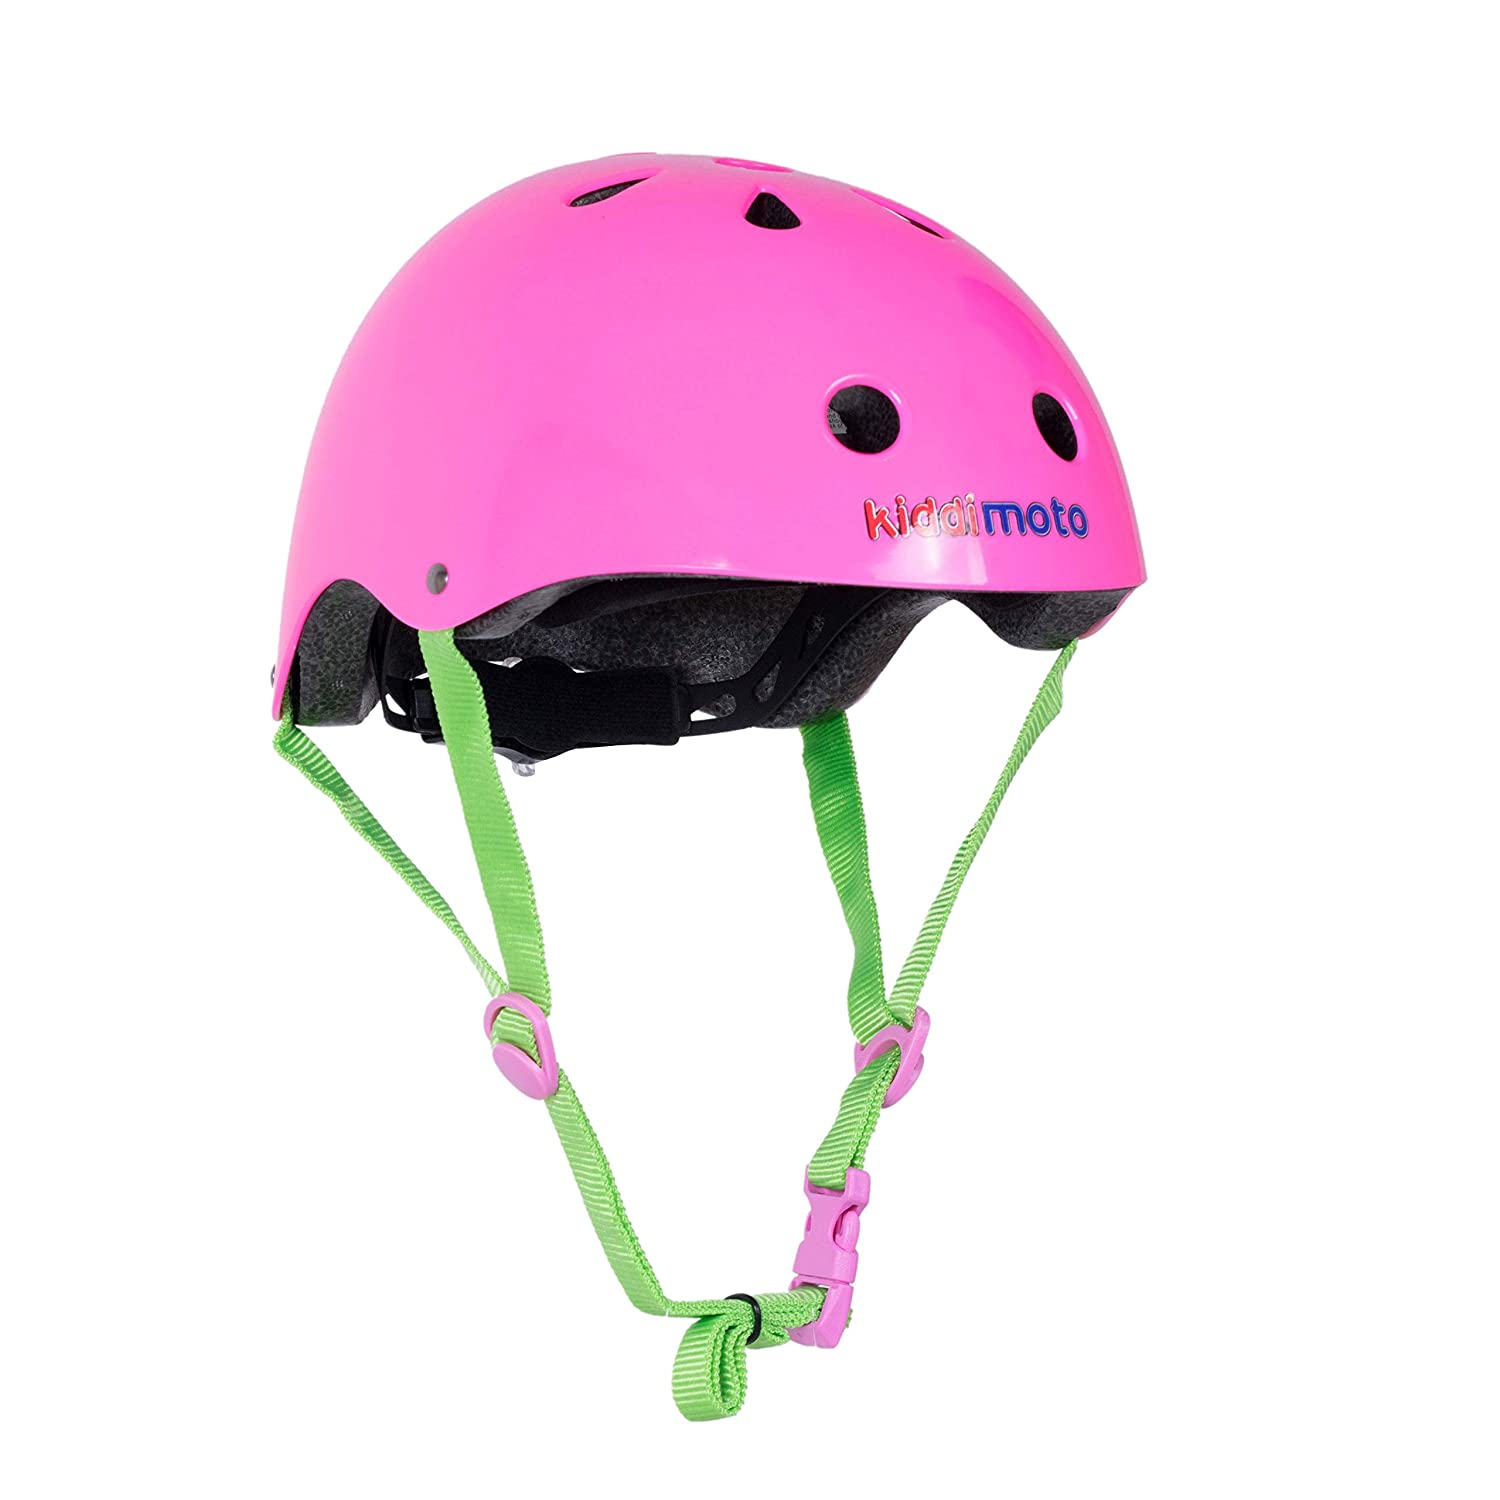 Kiddimoto One Color Helmet with Dial Adjustment for Kids Children Boys and Girls Small and Medium